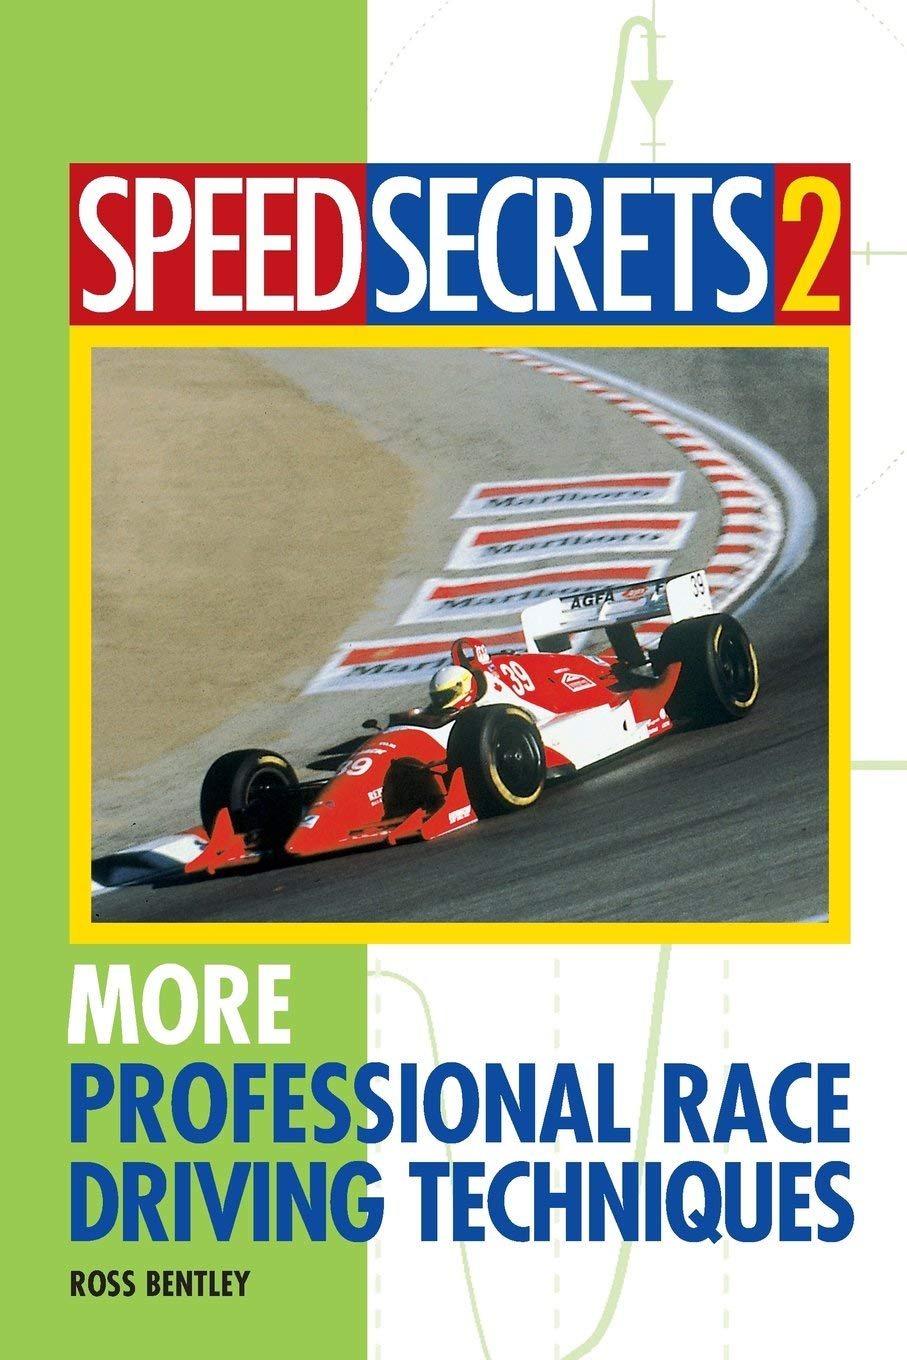 Image OfSpeed Secrets II: More Professional Race Driving Techniques